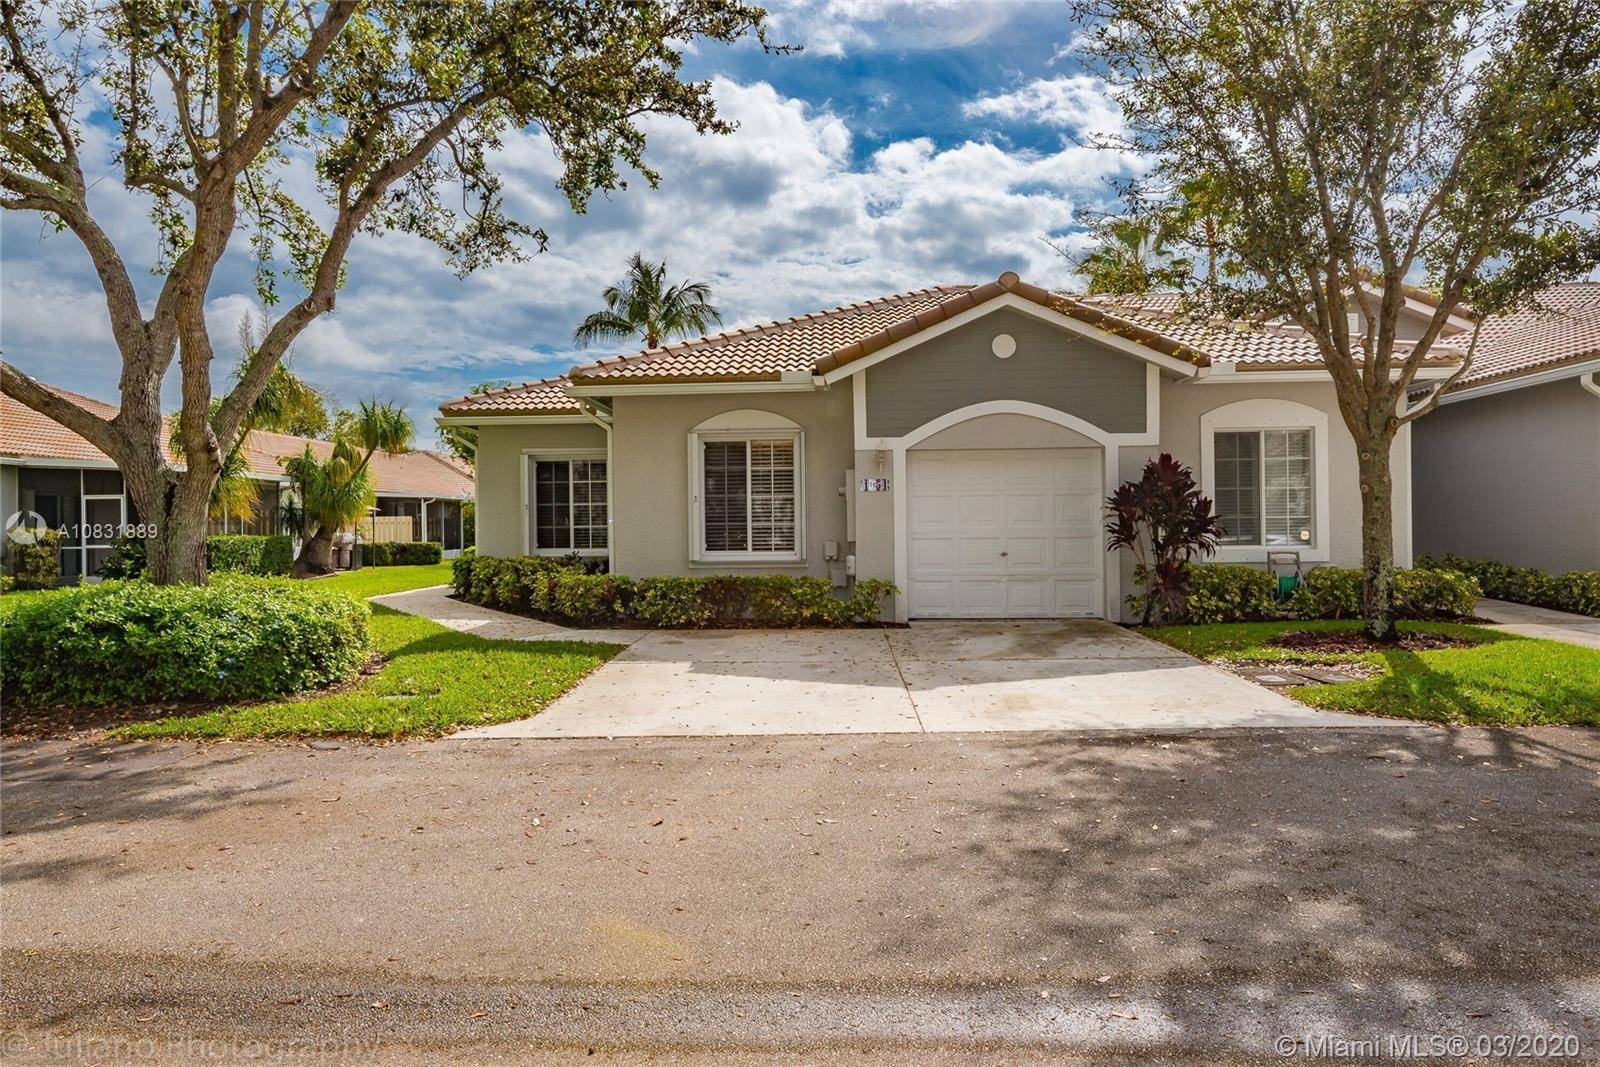 BEAUTIFUL 3/2 W/ 1CAR GARAGE VILLA IN GUARD GATED COMMUNITY!!! THIS UNIT HAS BEEN COMPLETELY REDONE!